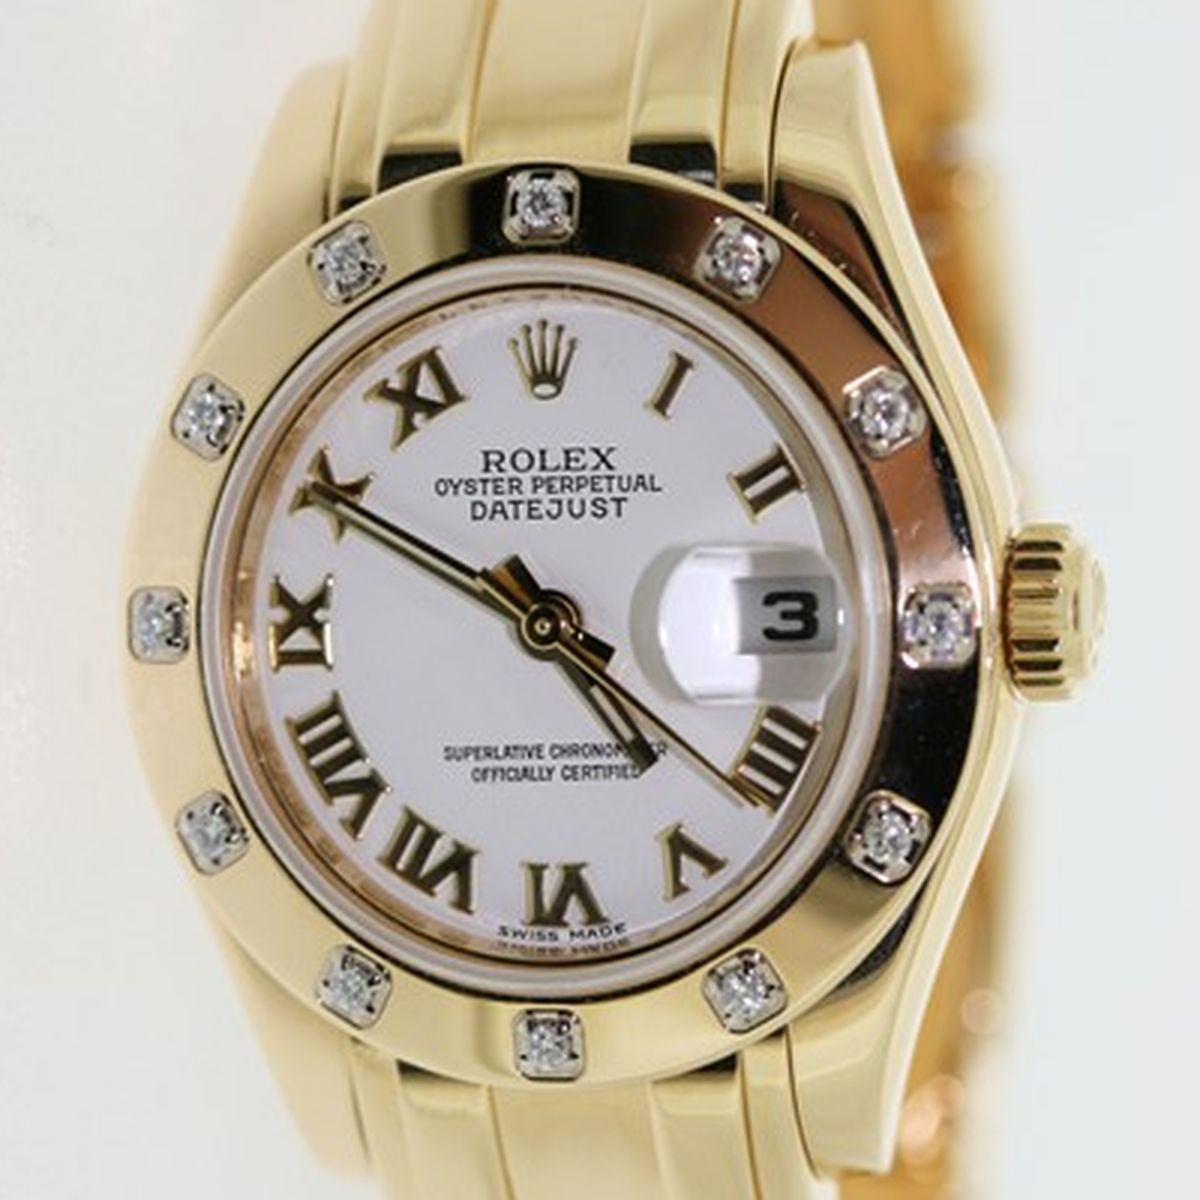 Lady-Datejust Pearlmaster Rolex Watch